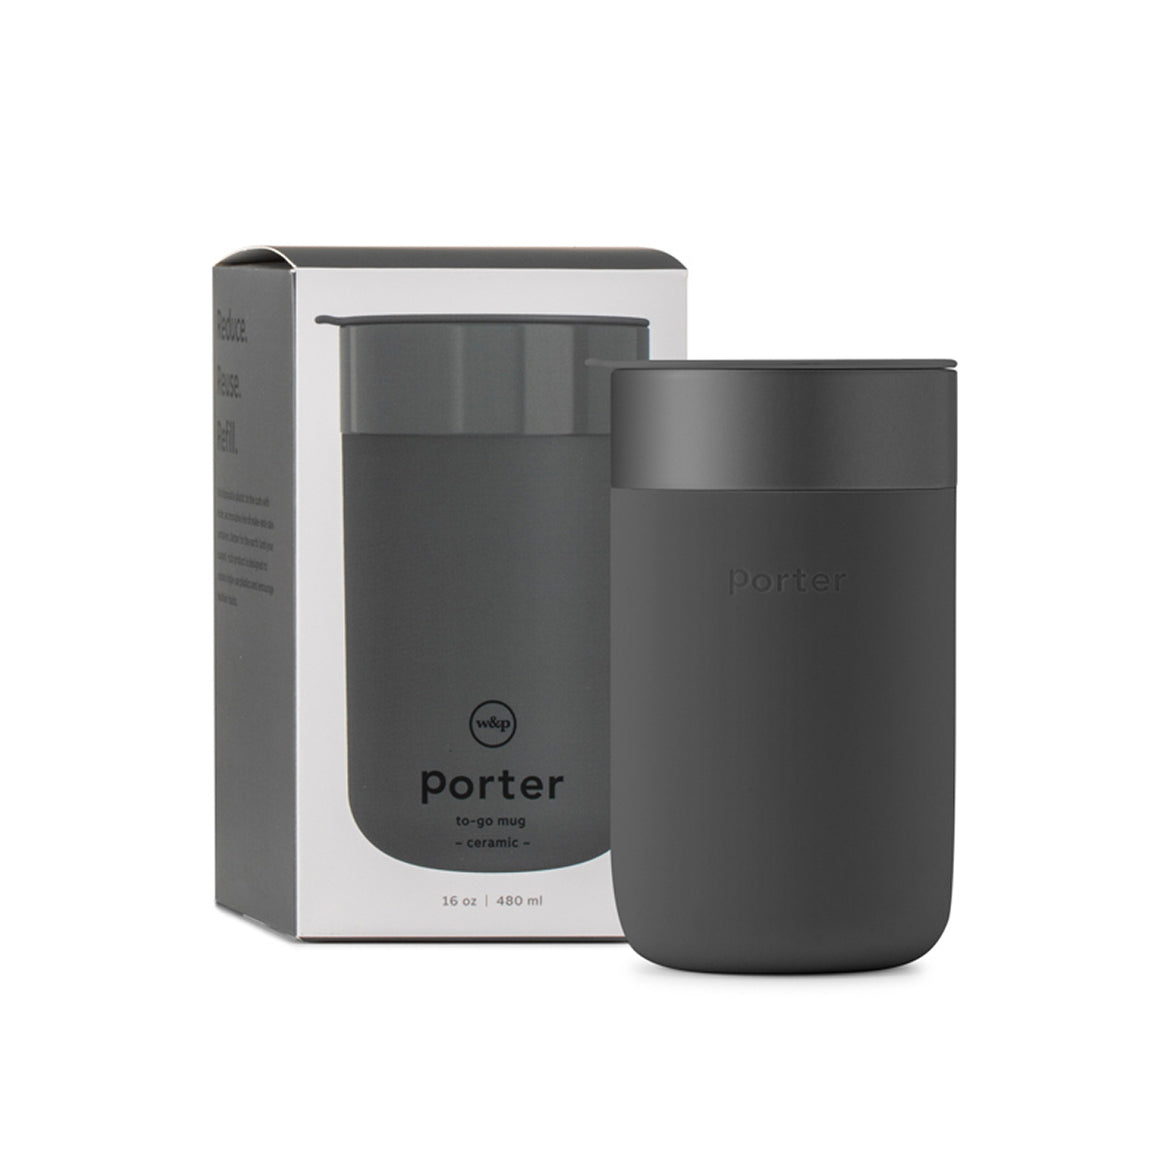 "A charcoal black travel mug composed of Ceramic and Silicone. Shown in front of its box which features the text "" Port to-go mug"" and "" Reduce, Reuse, Refill""."